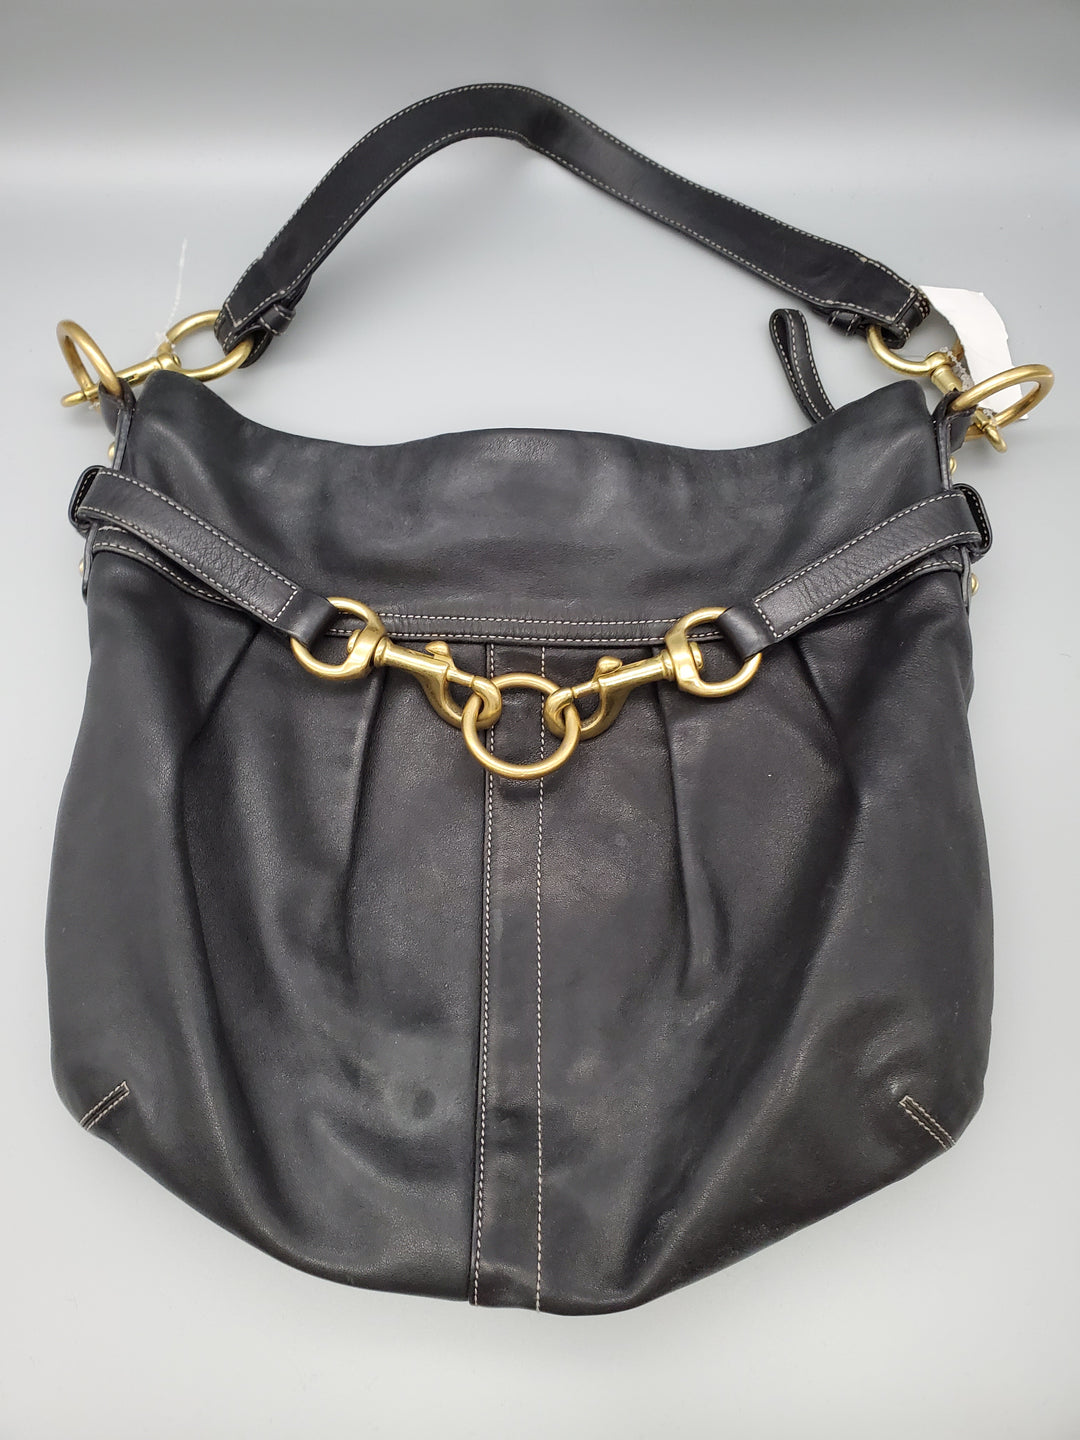 Primary Photo - BRAND: COACH <BR>STYLE: HANDBAG <BR>COLOR: BLACK <BR>SIZE: LARGE <BR>OTHER INFO: ** <BR>SKU: 115-115260-86463<BR>MODERATE WEAR ON LEATHER